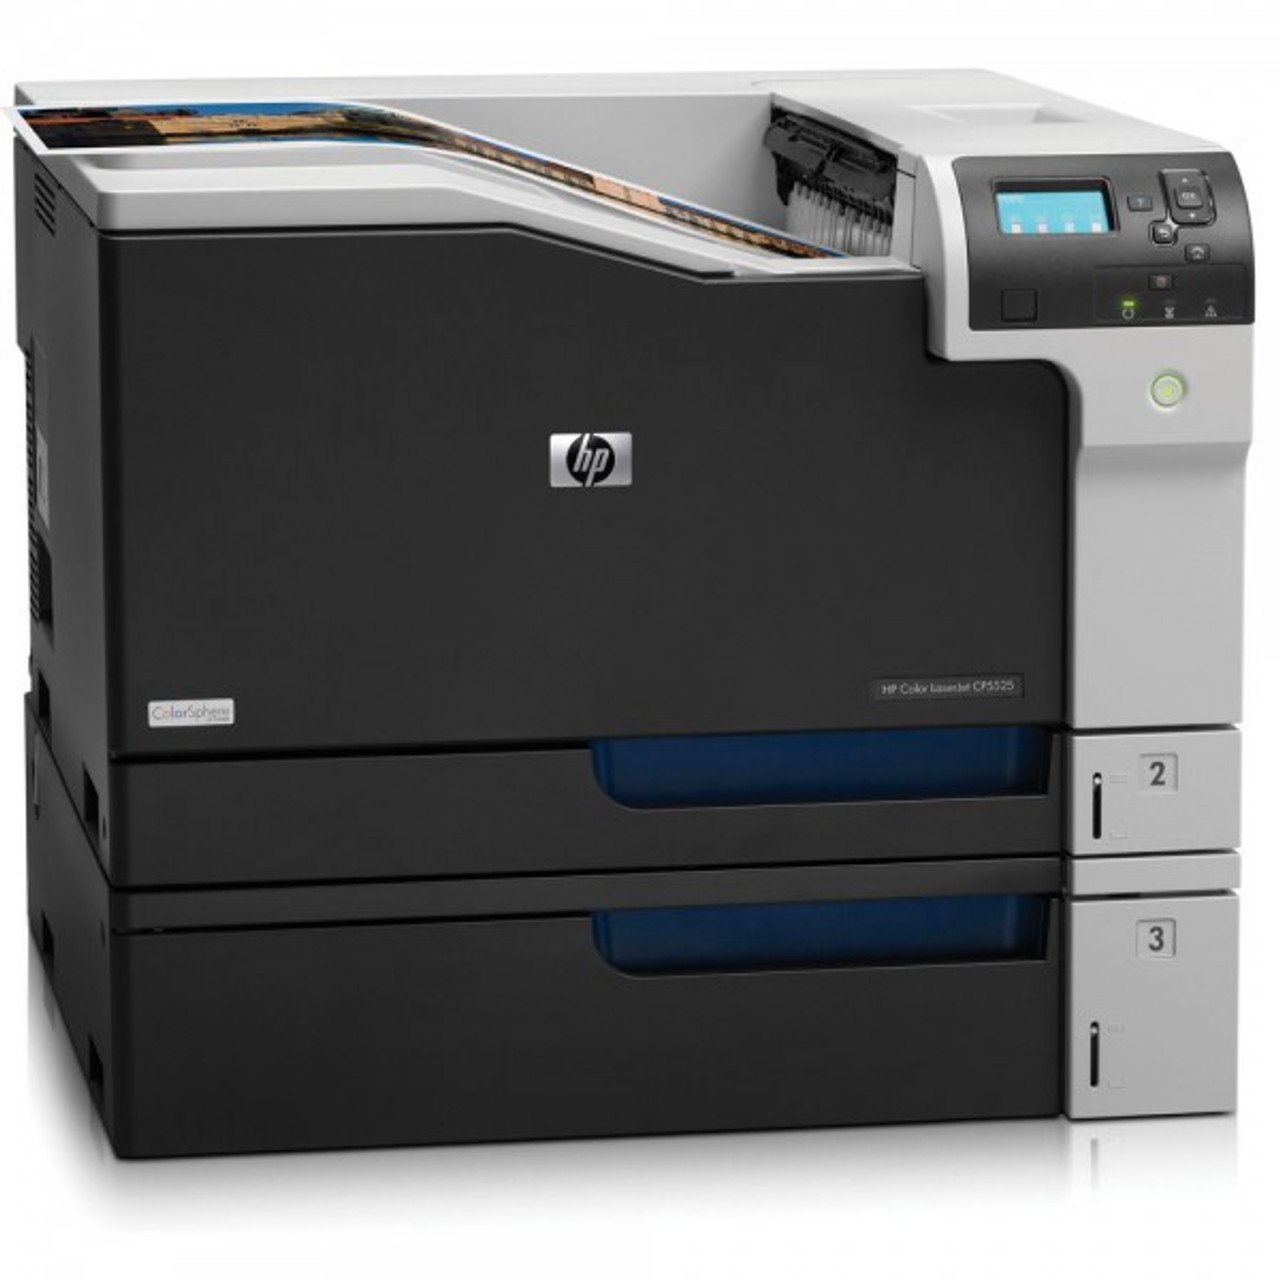 HP Color LaserJet CP5525N - CE707A - HP Laser Printer for sale